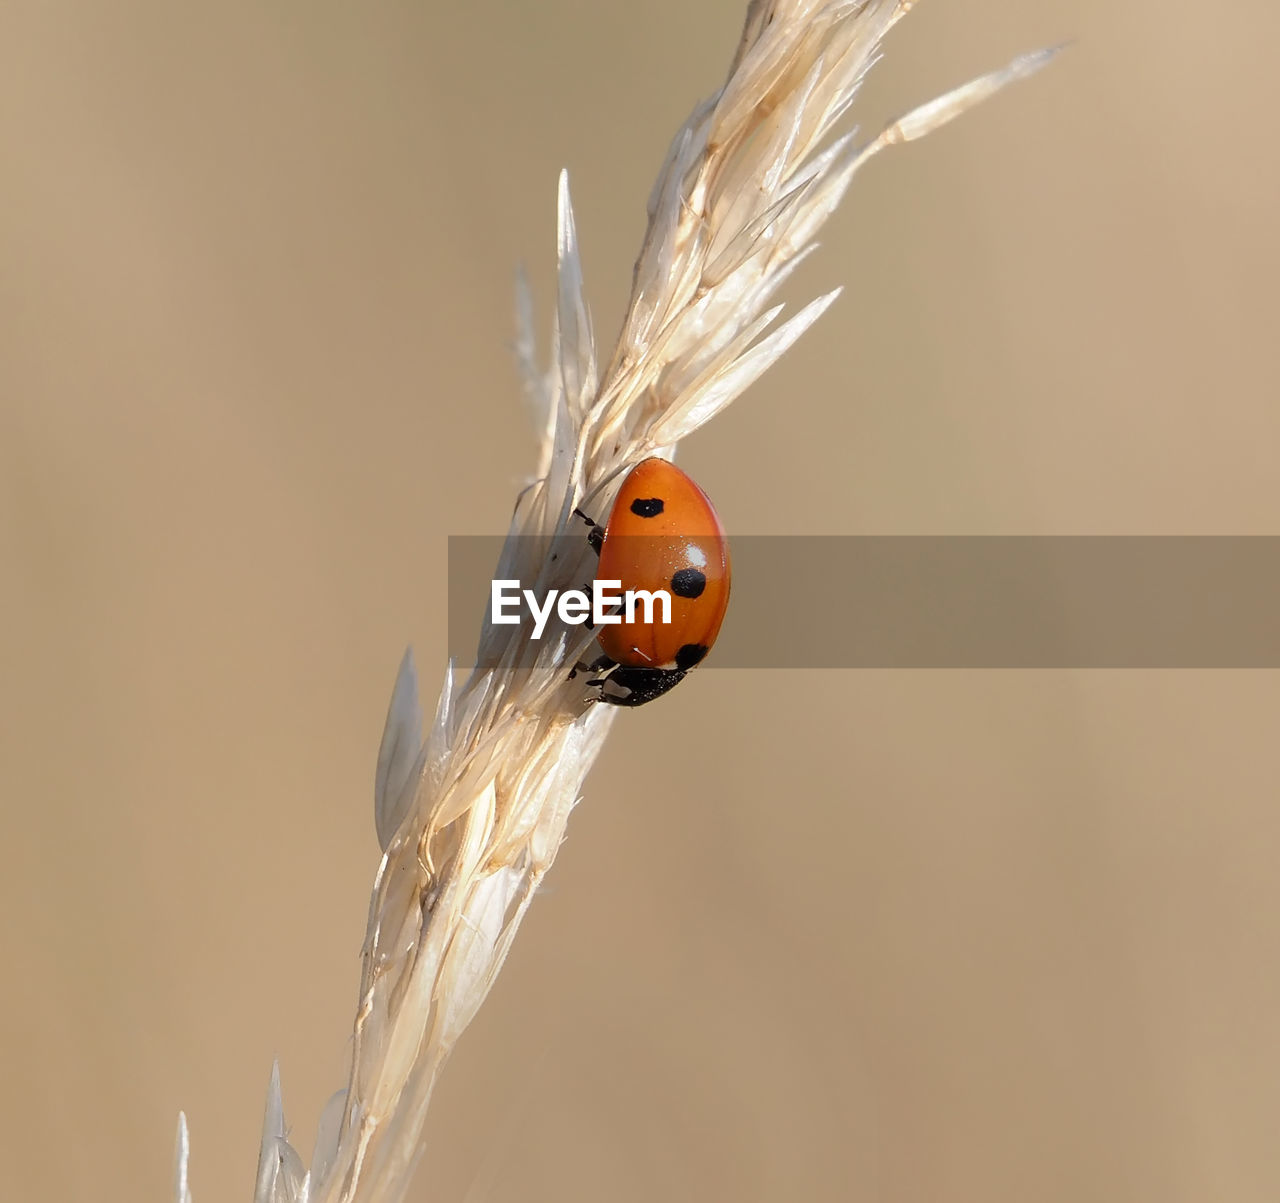 ladybug, beetle, one animal, animal wildlife, animal themes, animal, animals in the wild, insect, close-up, invertebrate, focus on foreground, nature, plant, no people, spotted, day, outdoors, copy space, red, crop, small